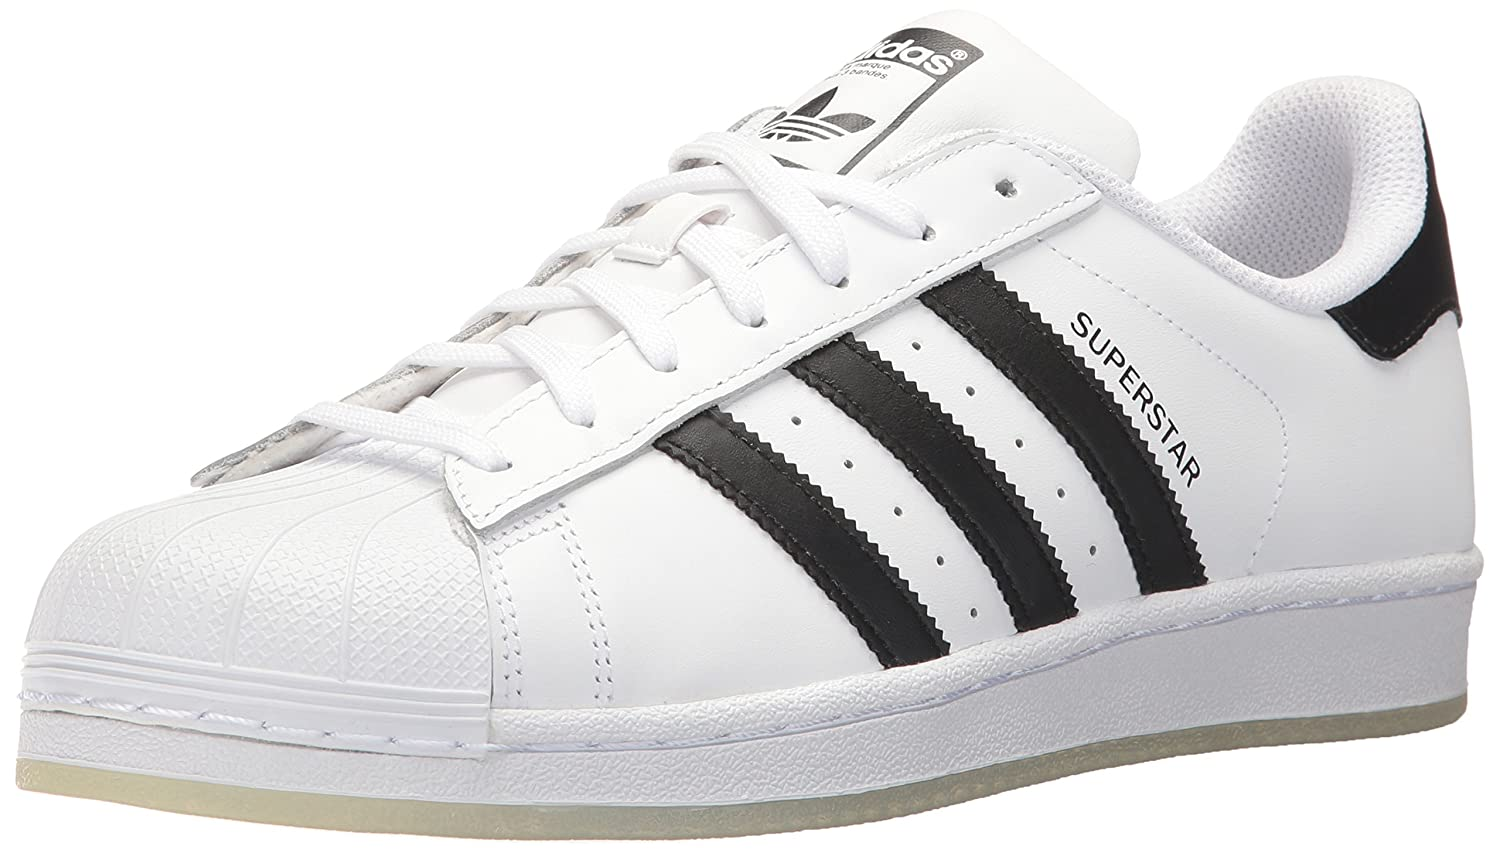 2015 adidas Superstar Slip On White Mono adidas Shoes Sale  adidas Originals Men's Superstar ll Sneaker